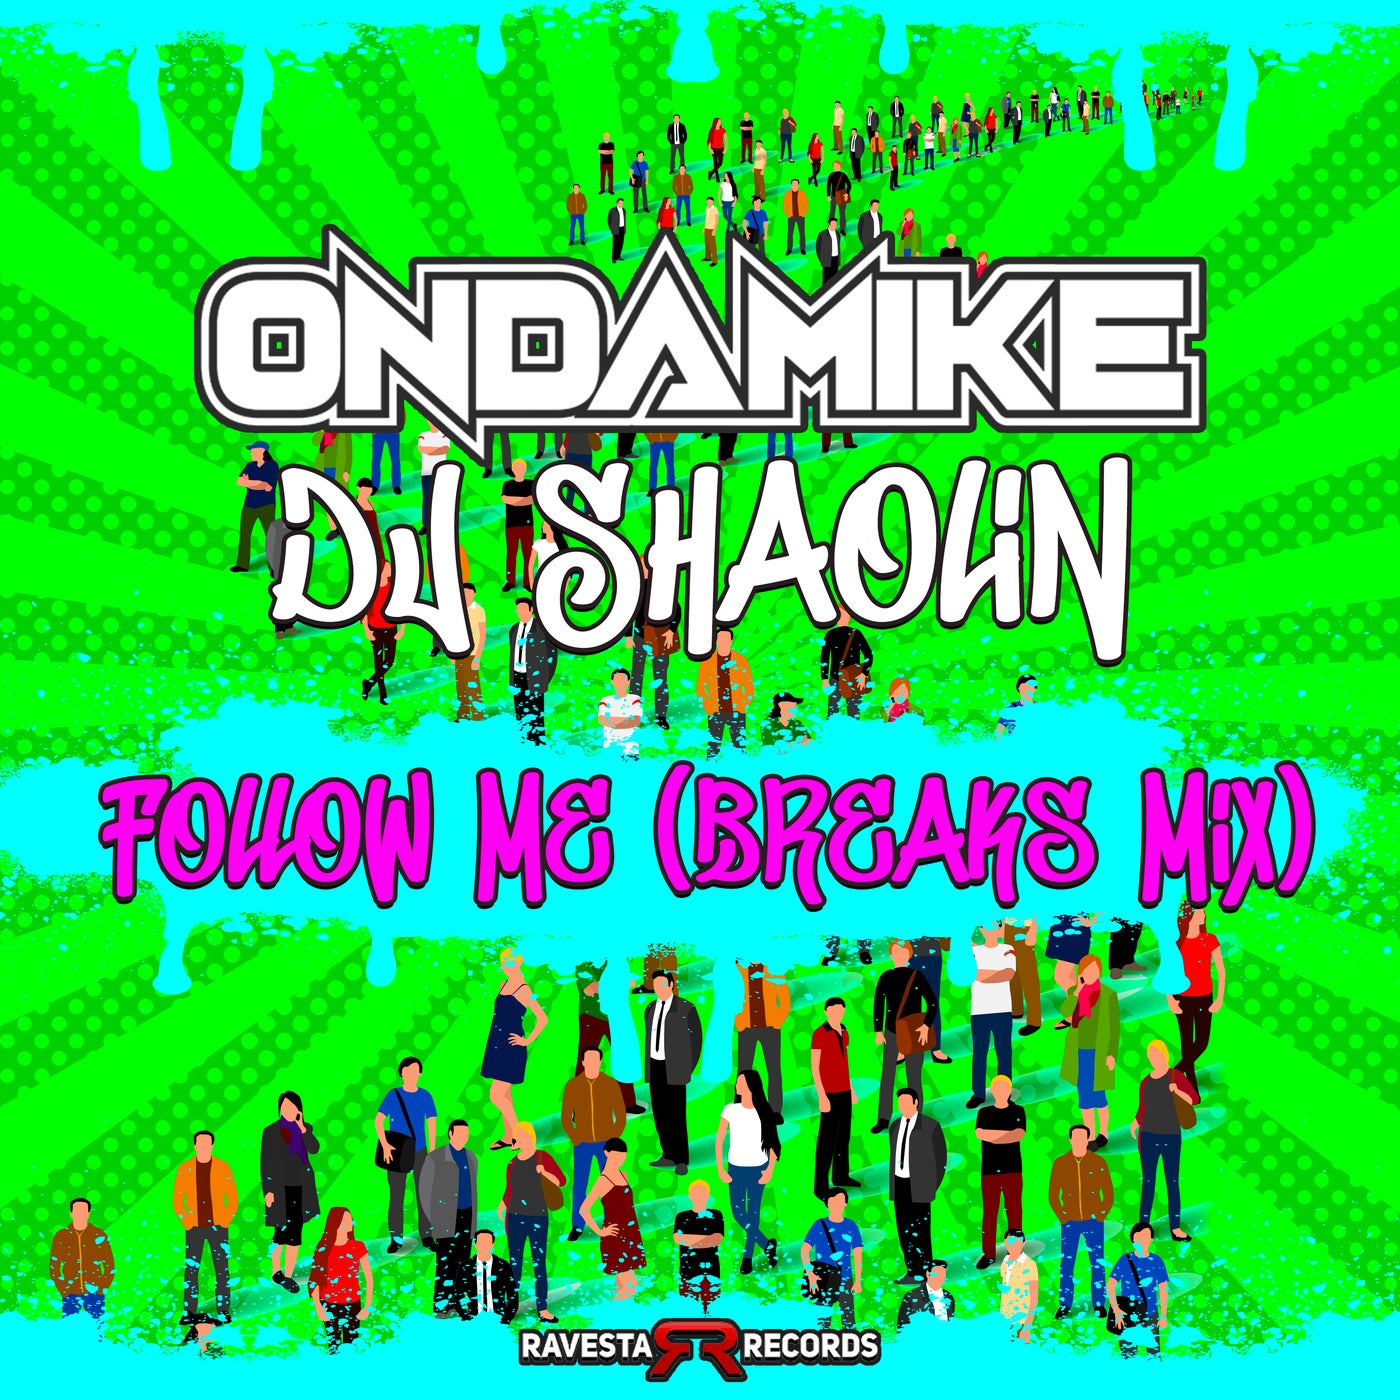 Follow Me (Breaks Mix)